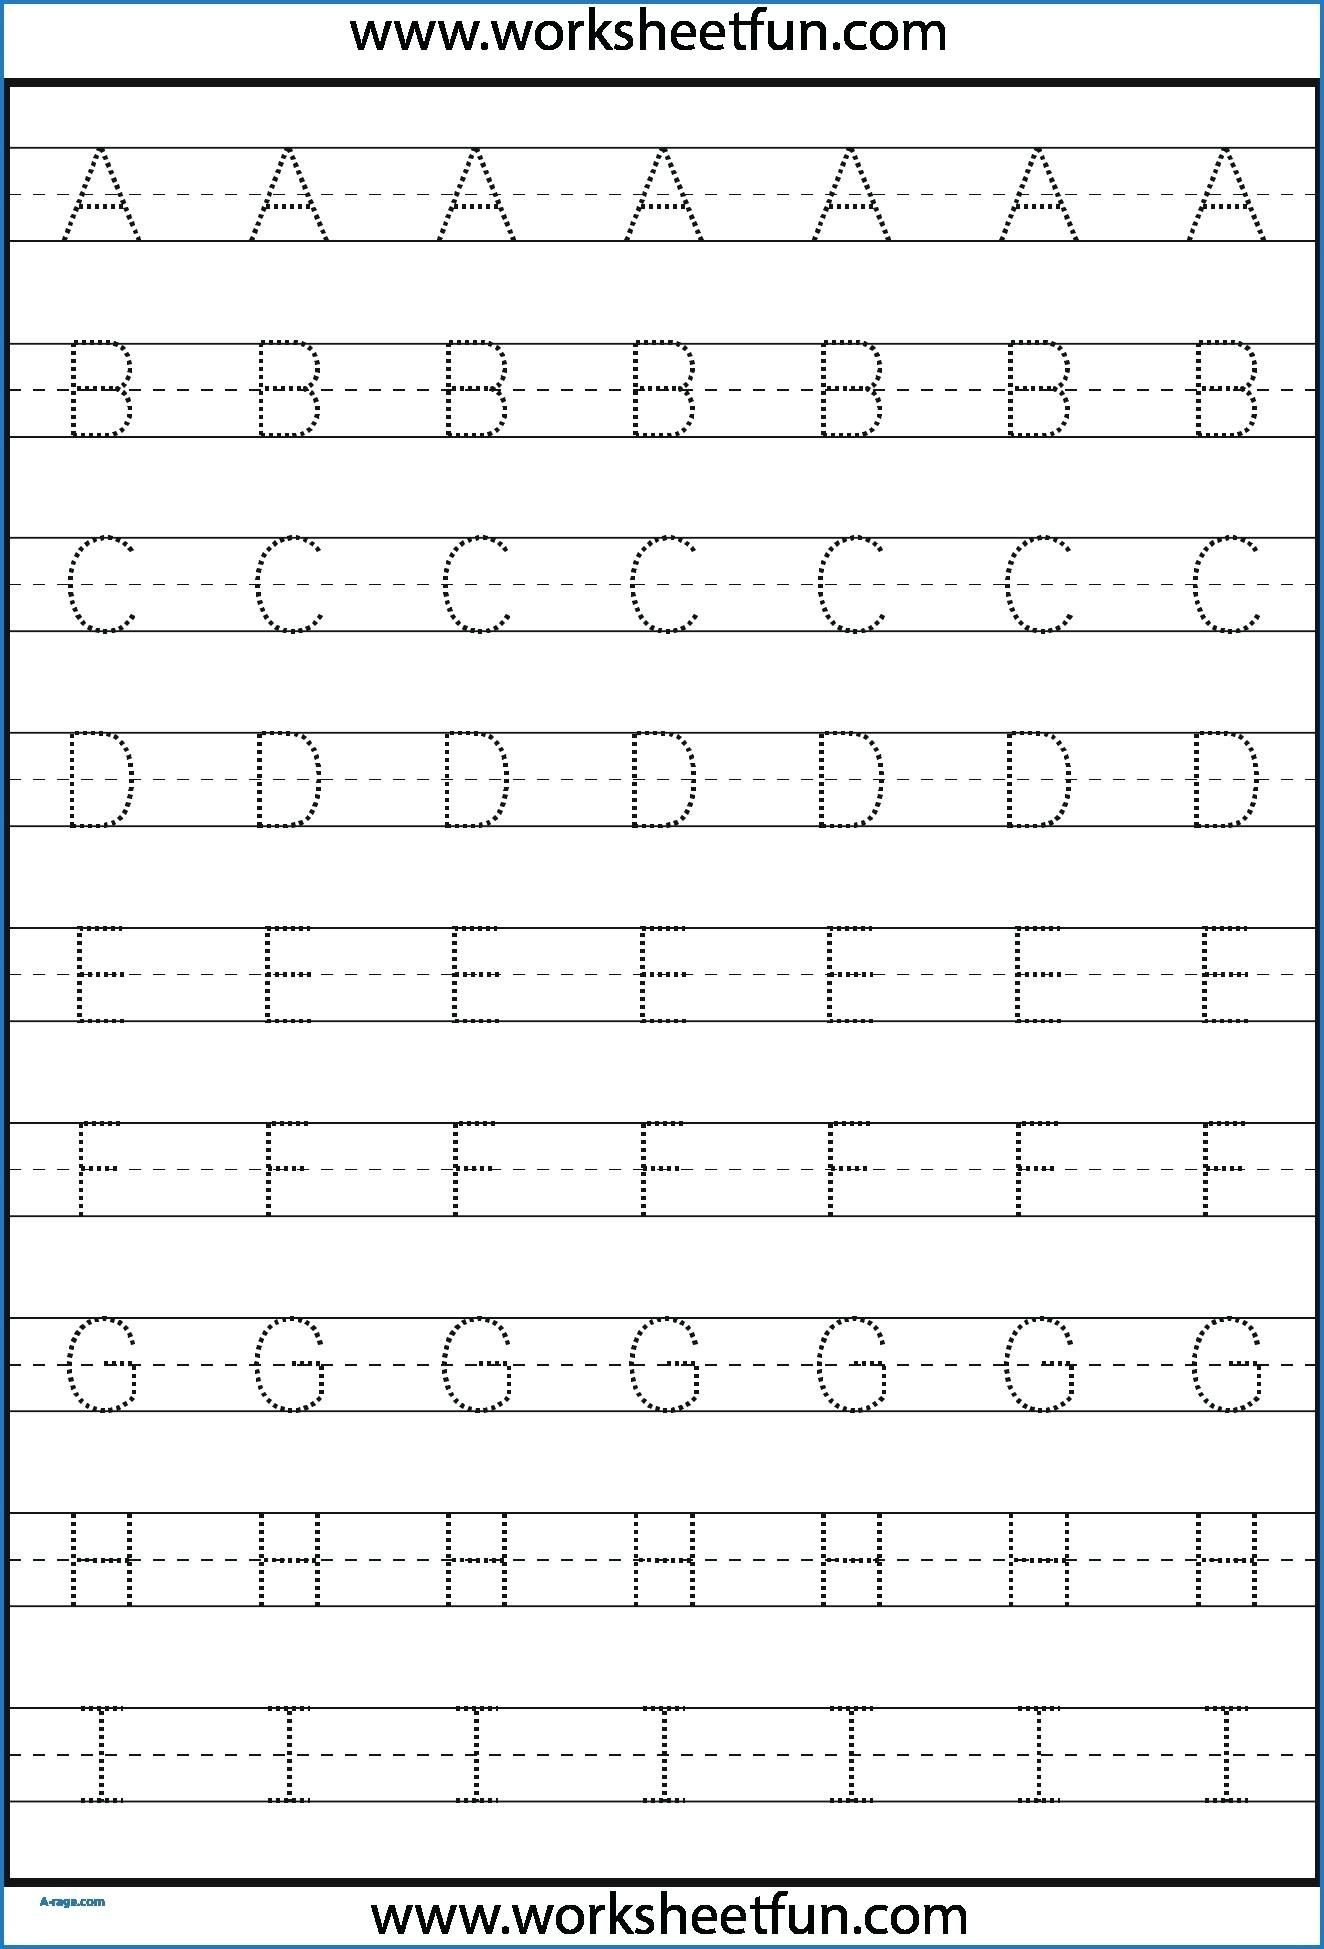 Kindergarten Letter Tracing Worksheets Pdf - Wallpaper Image with regard to The Alphabet Worksheets Pdf